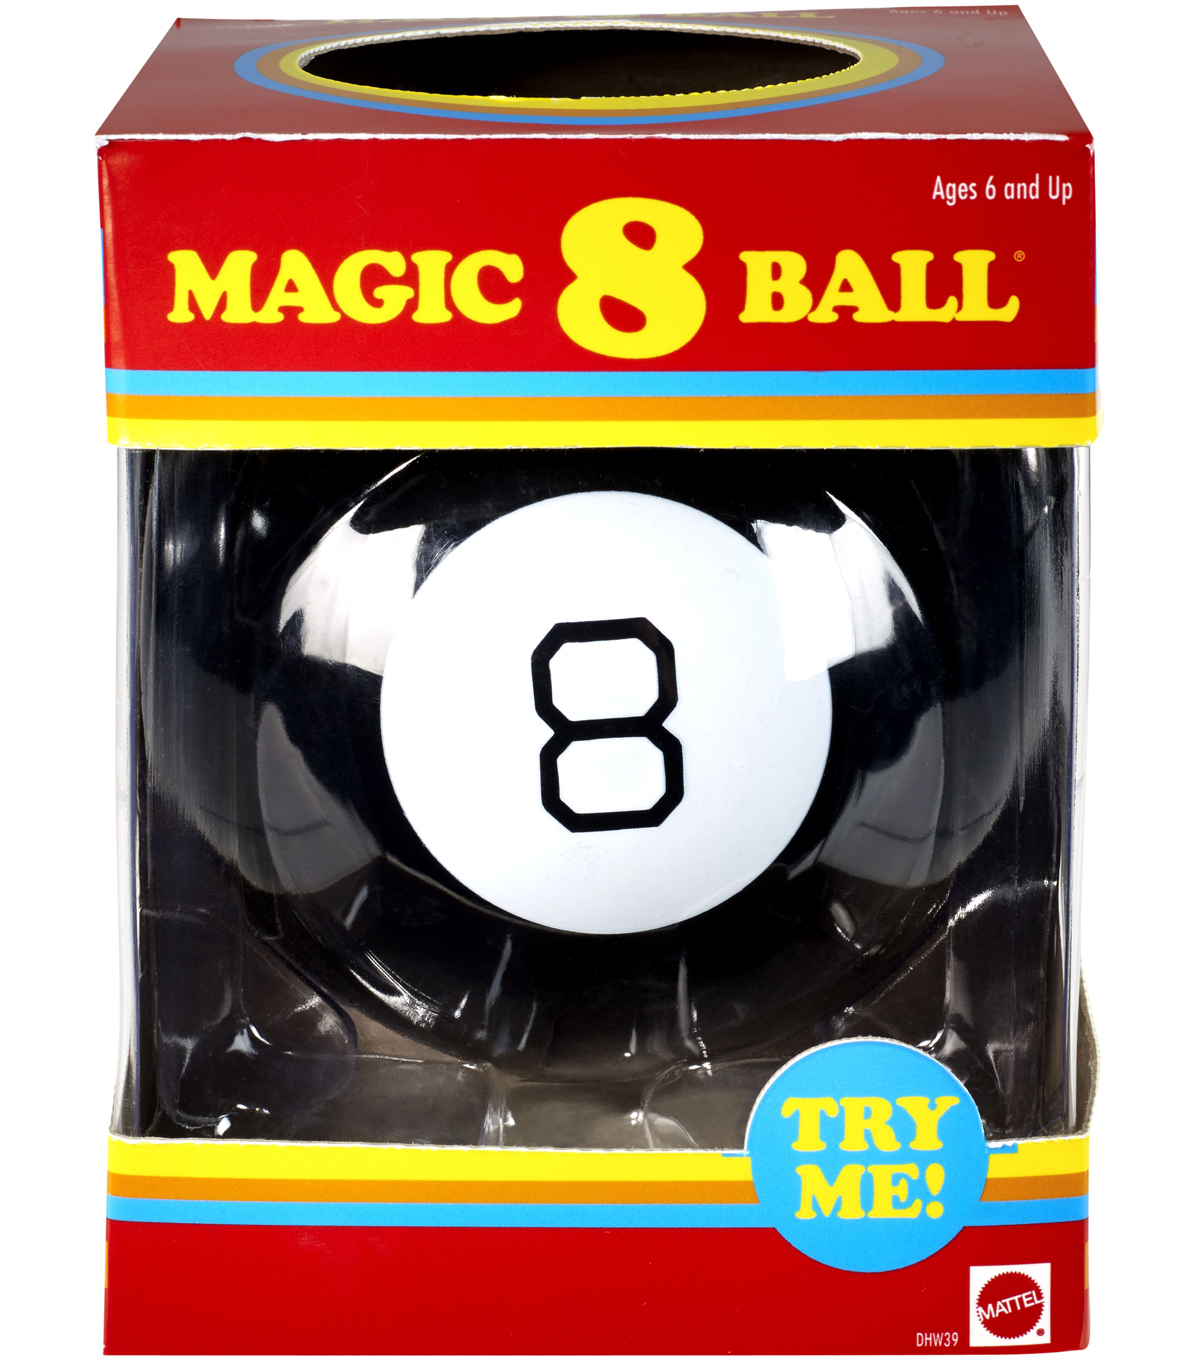 Mattel The Magic 8 Ball™ Novelty Toy